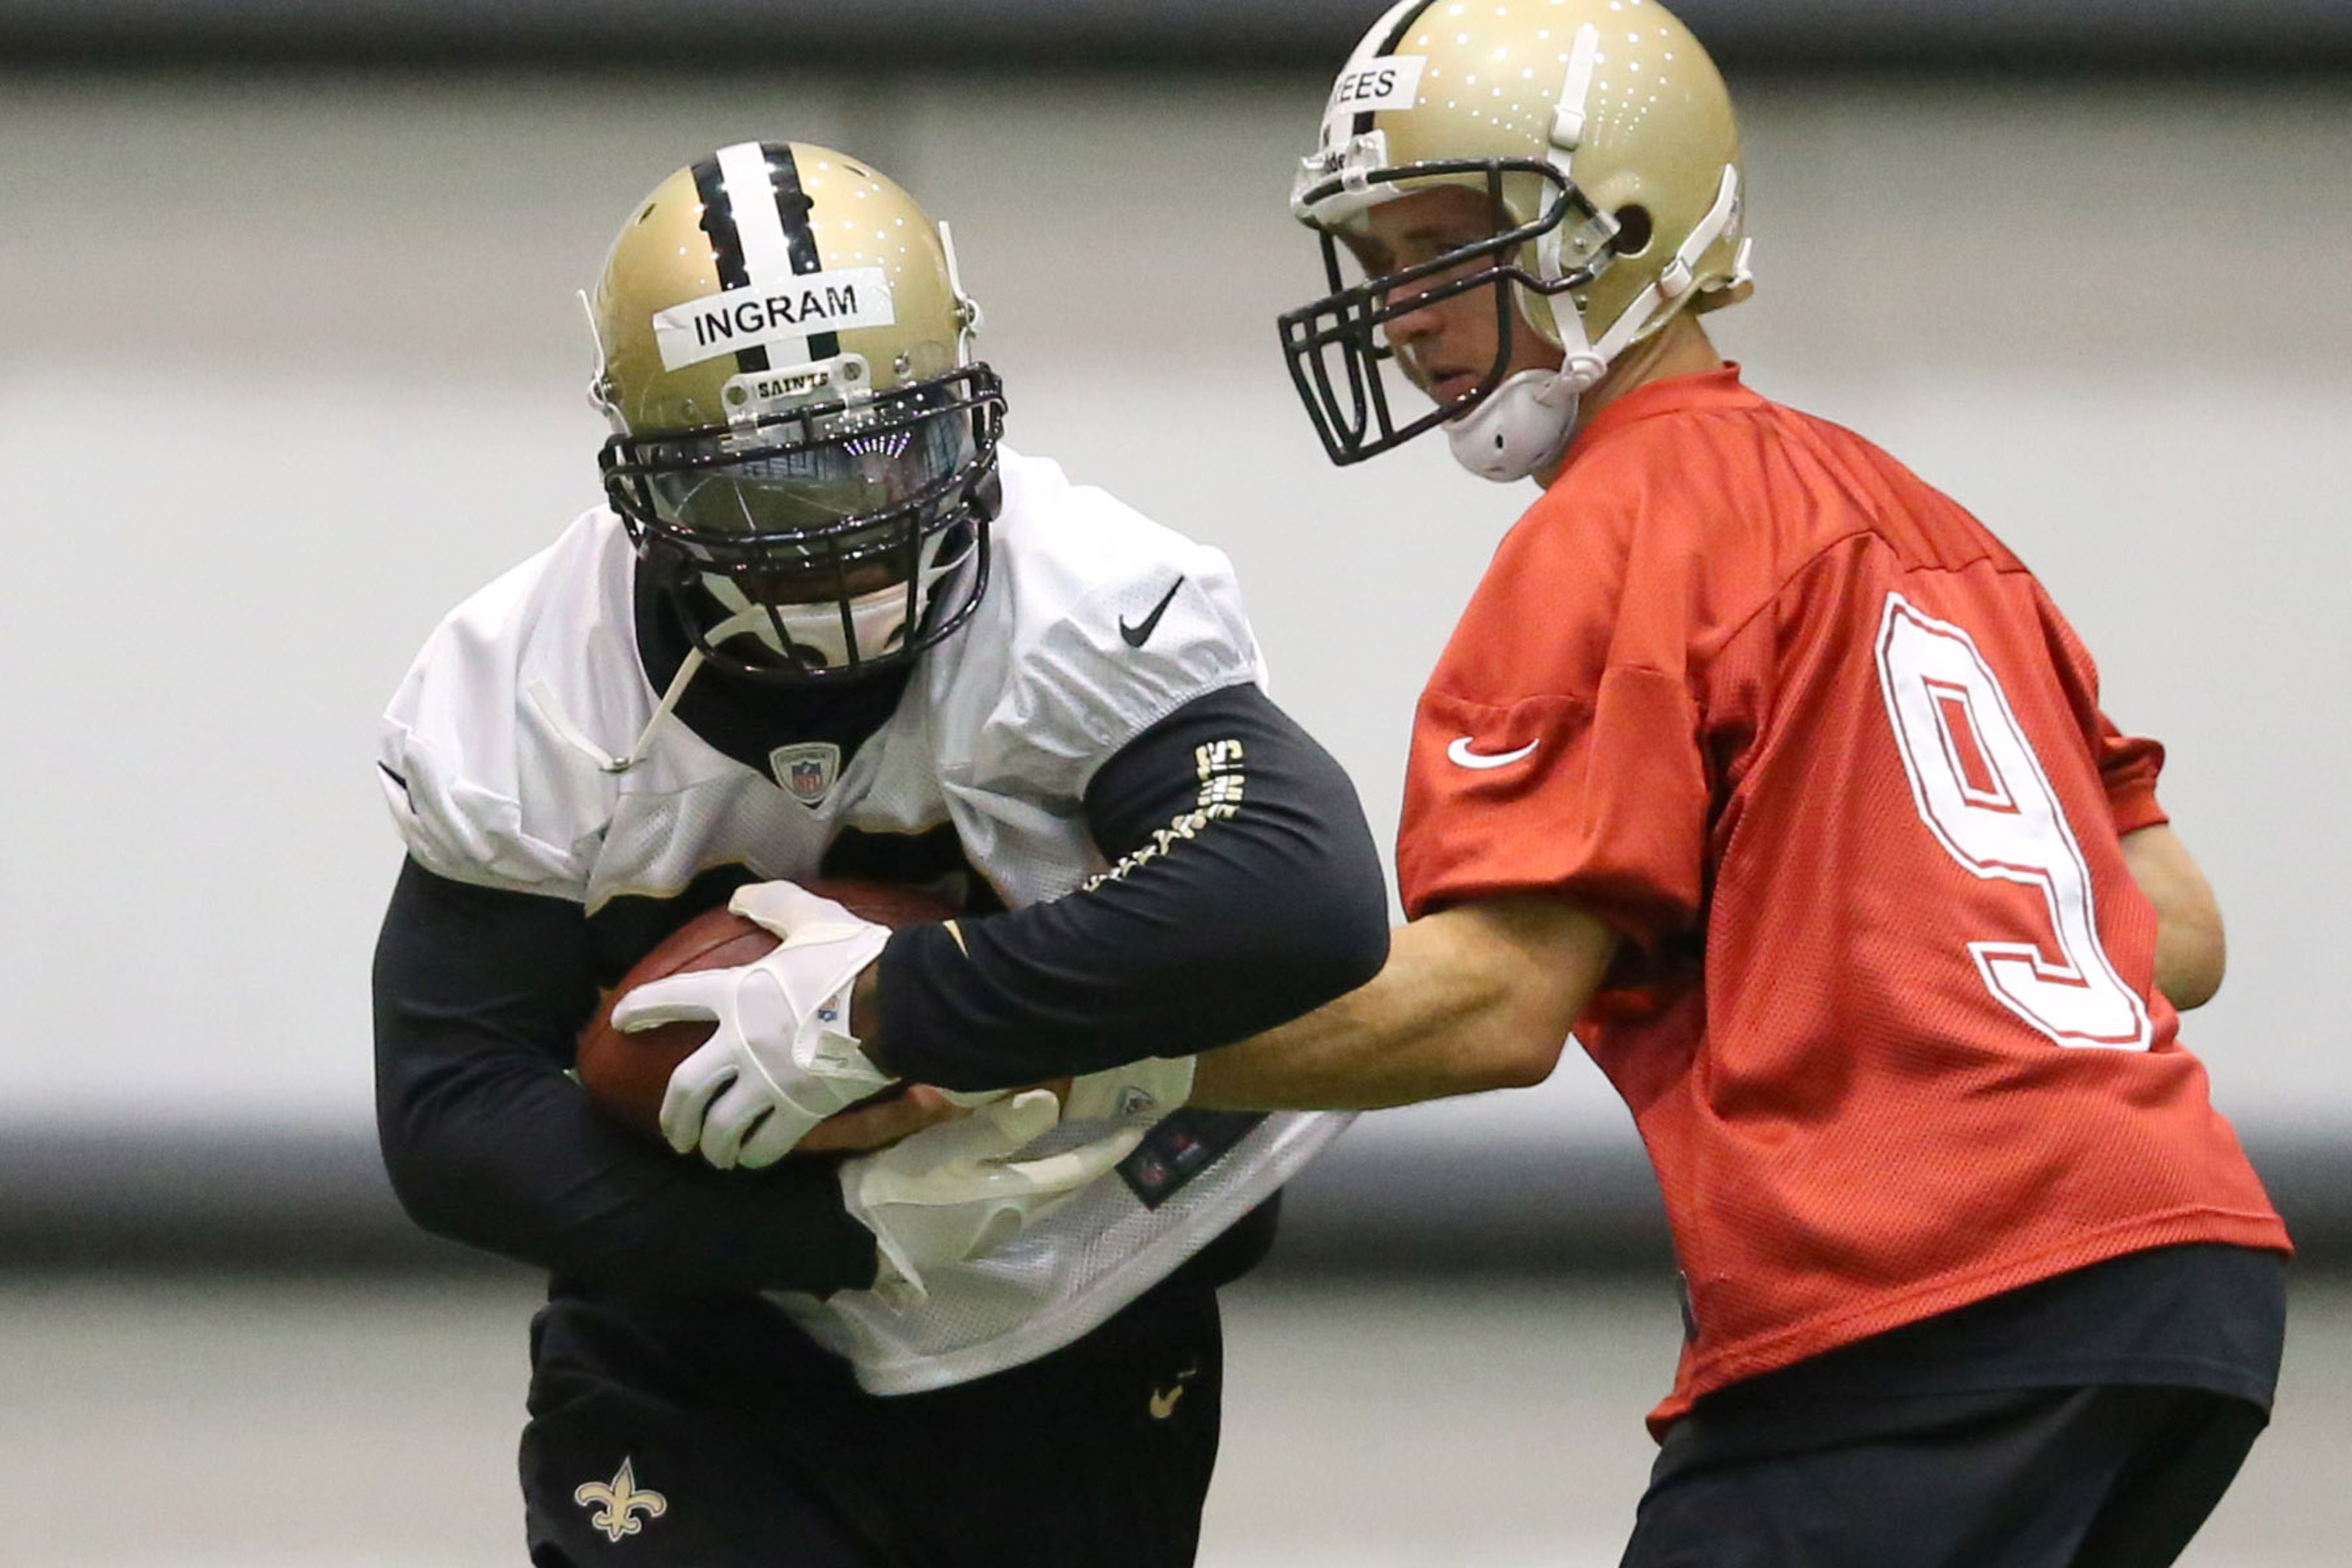 You can probably guess where Brees will rank, but what about Ingram?